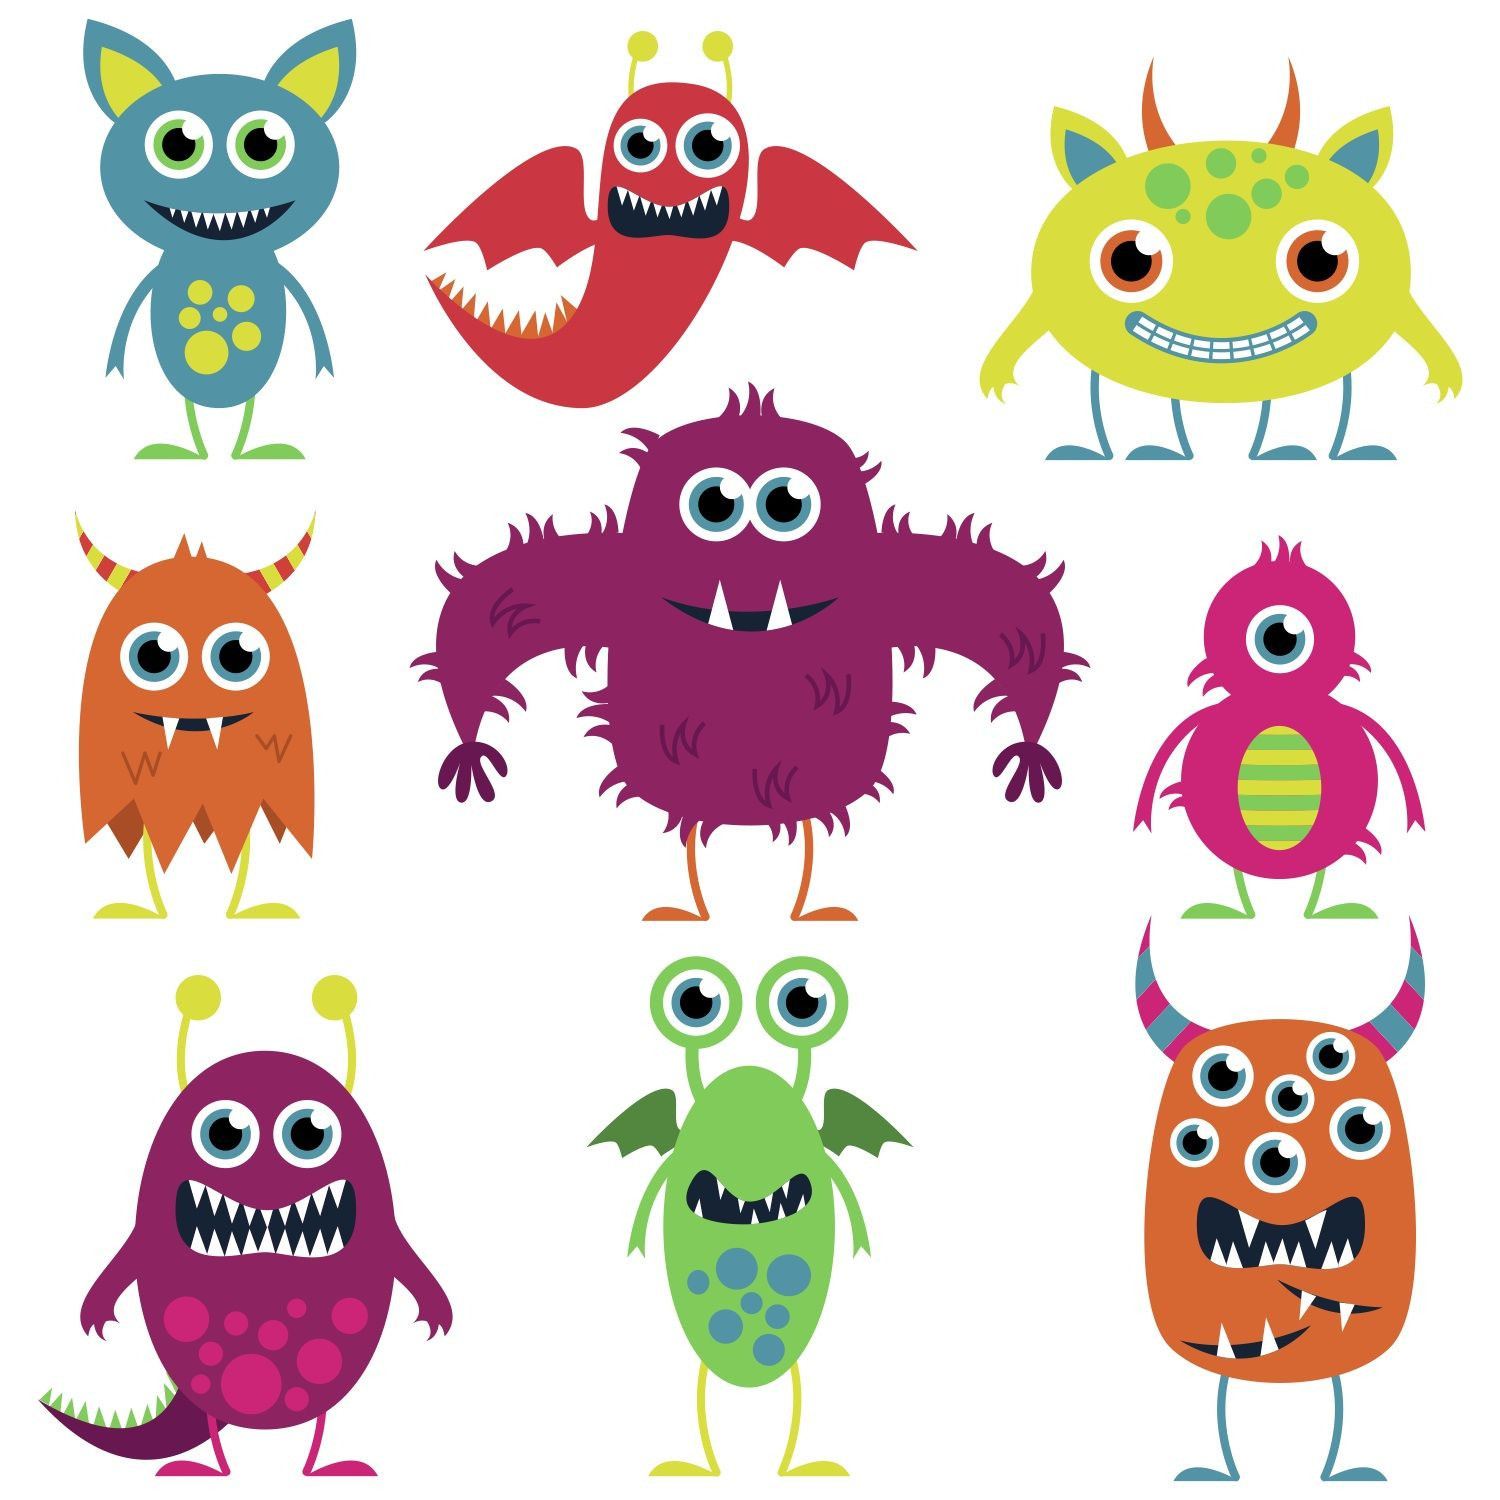 Gruselige Monster Ausmalbilder Inspirierend Friendly Monsters Illustrations Google Search … Neu Böse Monster Das Bild